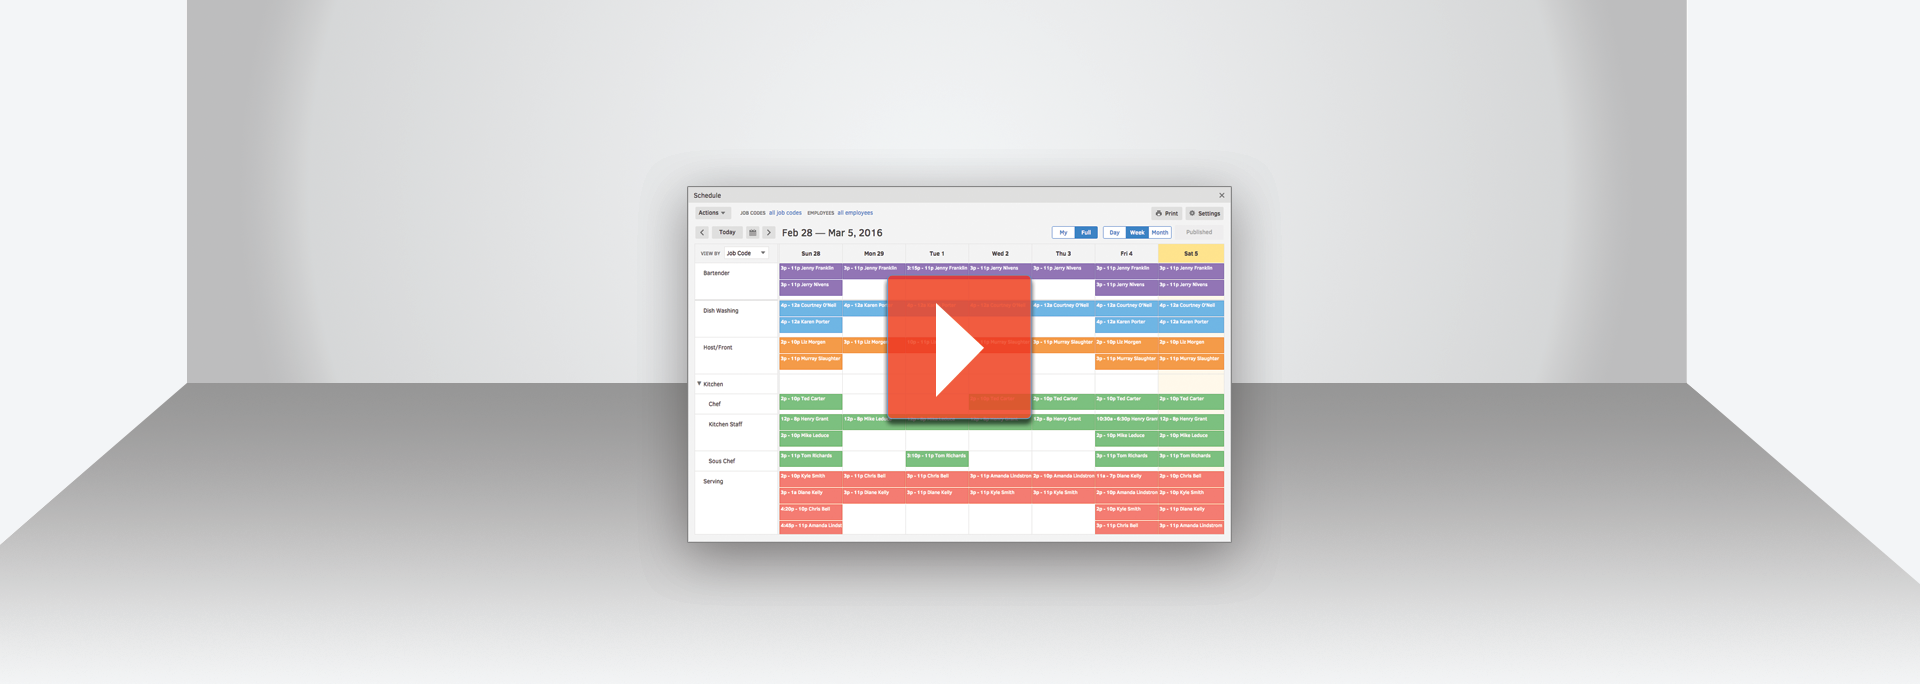 Create and assign jobs to employees instantly with TSheets job scheduling software.